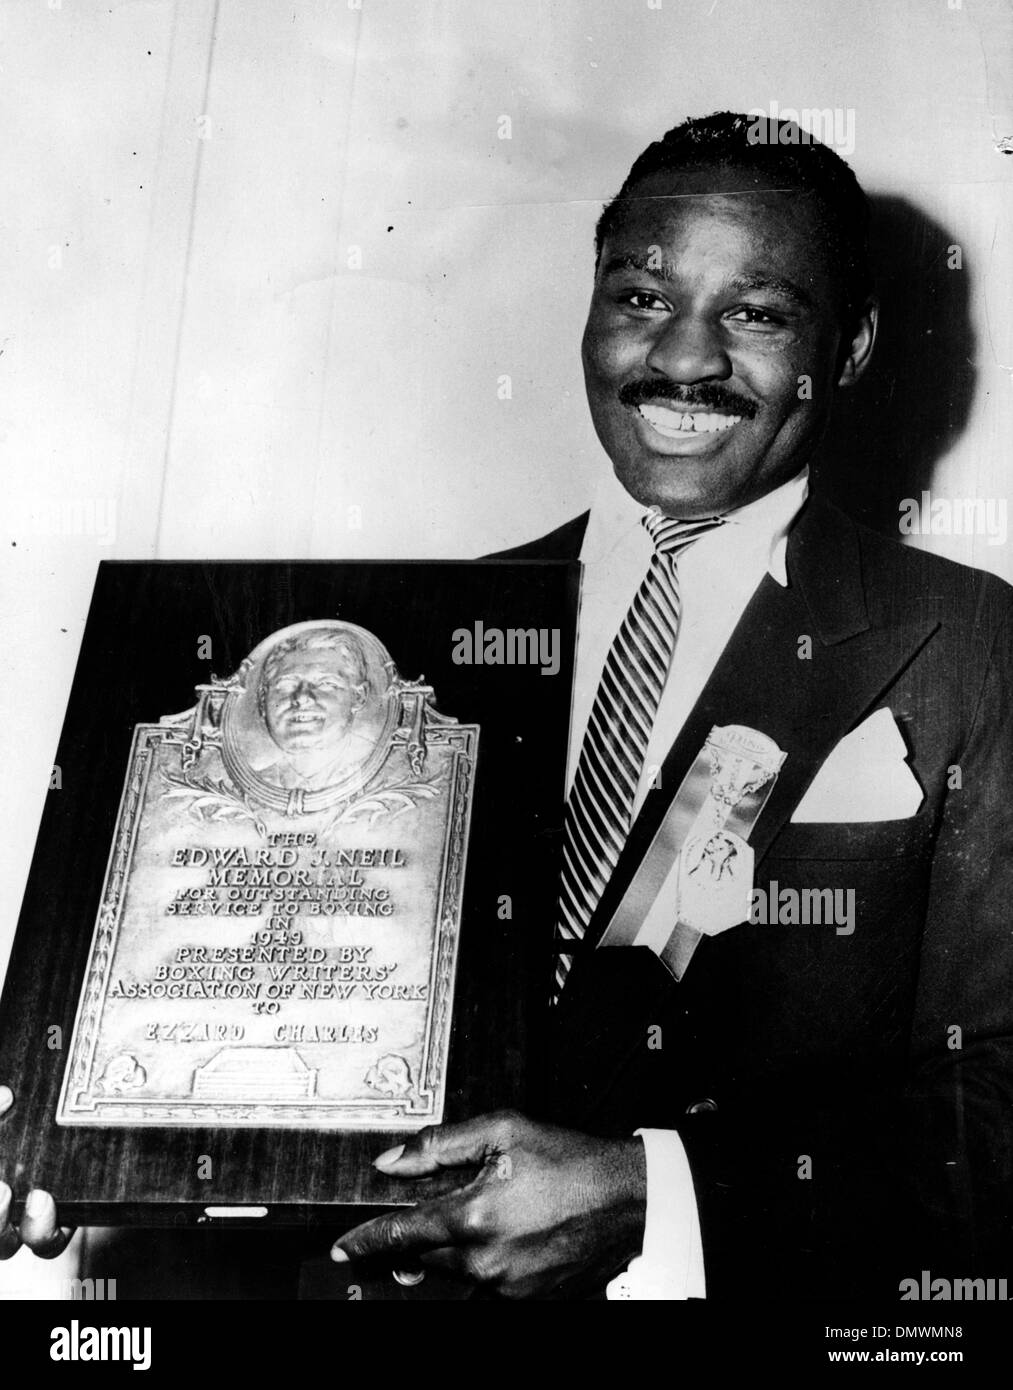 Jan. 17, 1950 - New York, New York, USA - EZZARD CHARLES was an African-American professional boxer and former Heavyweight Champion of the world. PICTURED: EZZARD CHARLES with the Edward J. Neil memorial Boxing plaque he was awarded in 1949.   (Credit Image: © KEYSTONE Pictures USA/ZUMAPRESS.com) - Stock Image